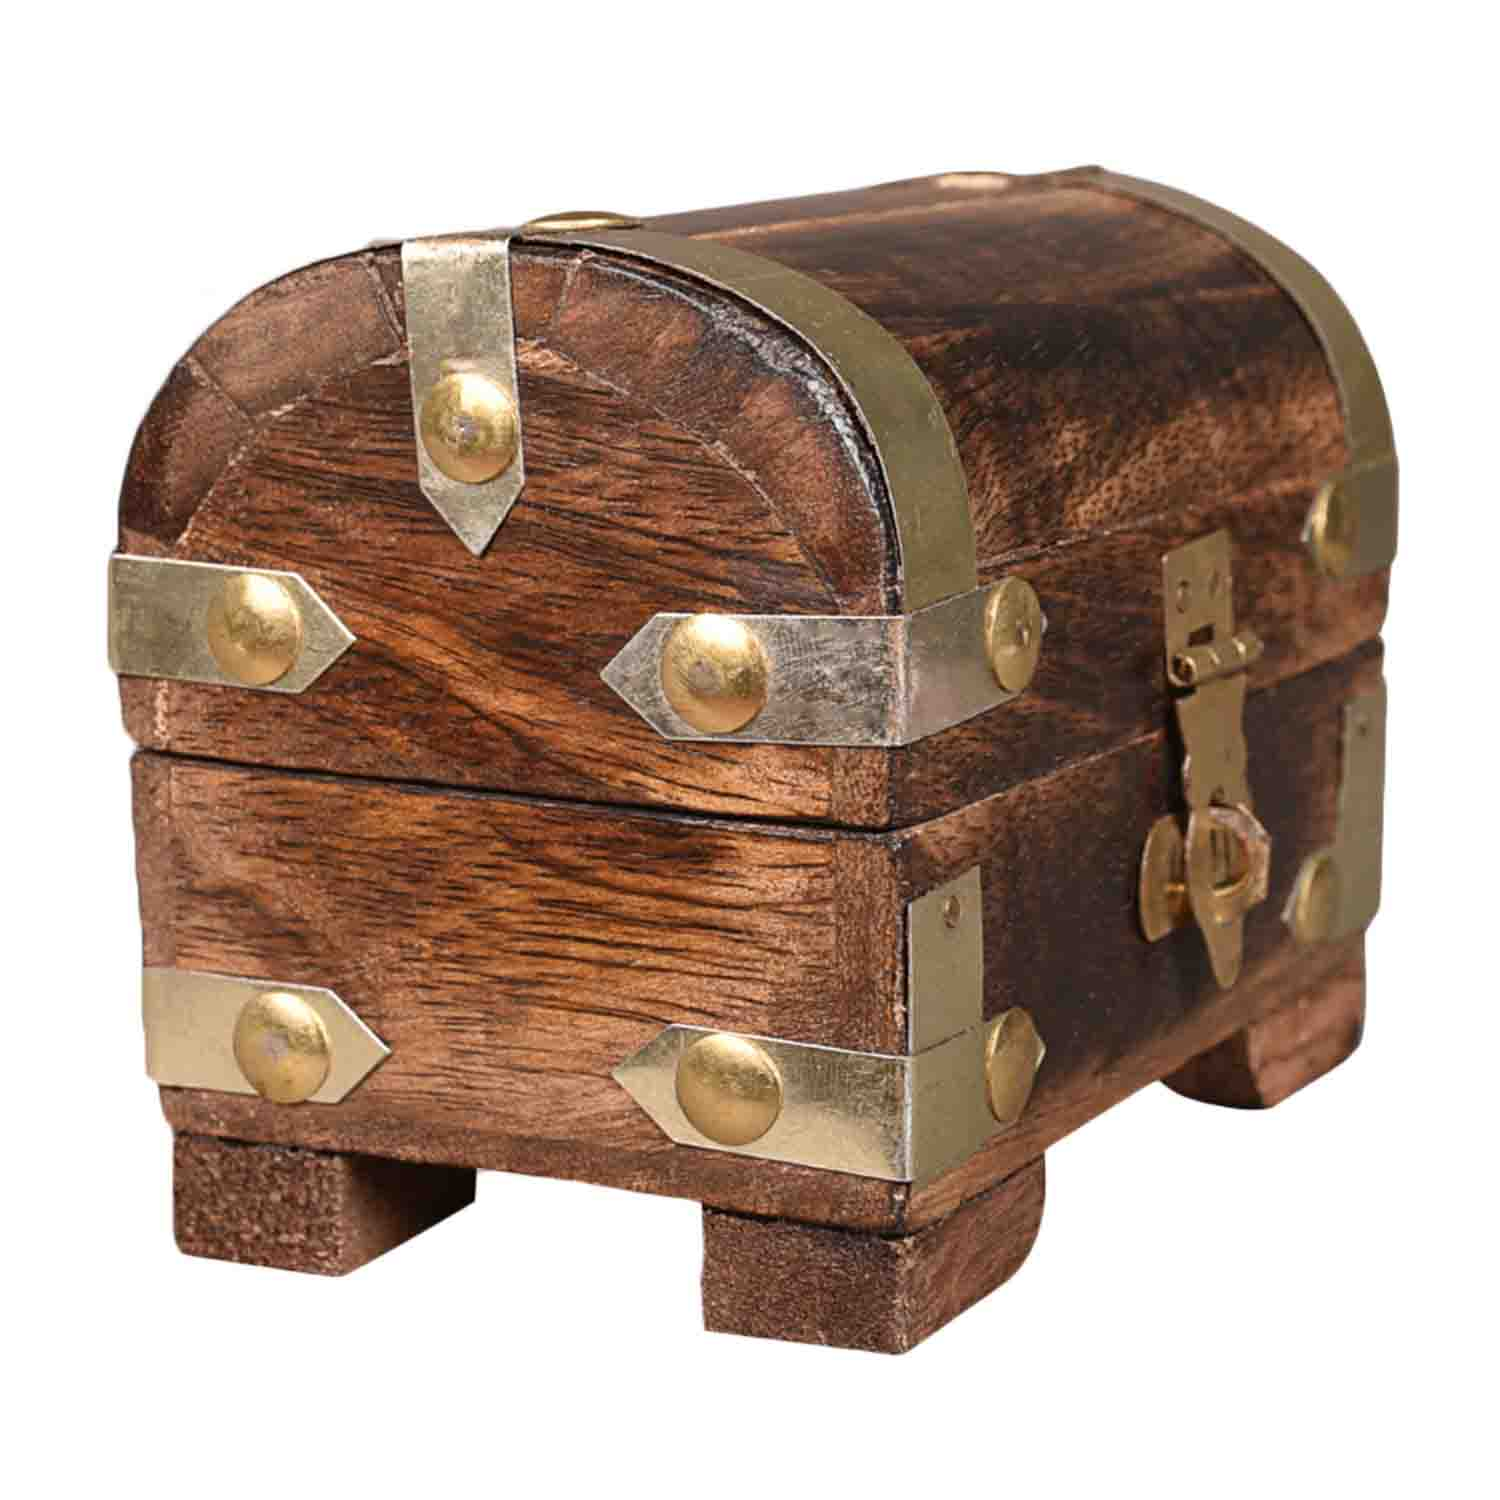 Peasant's Chest